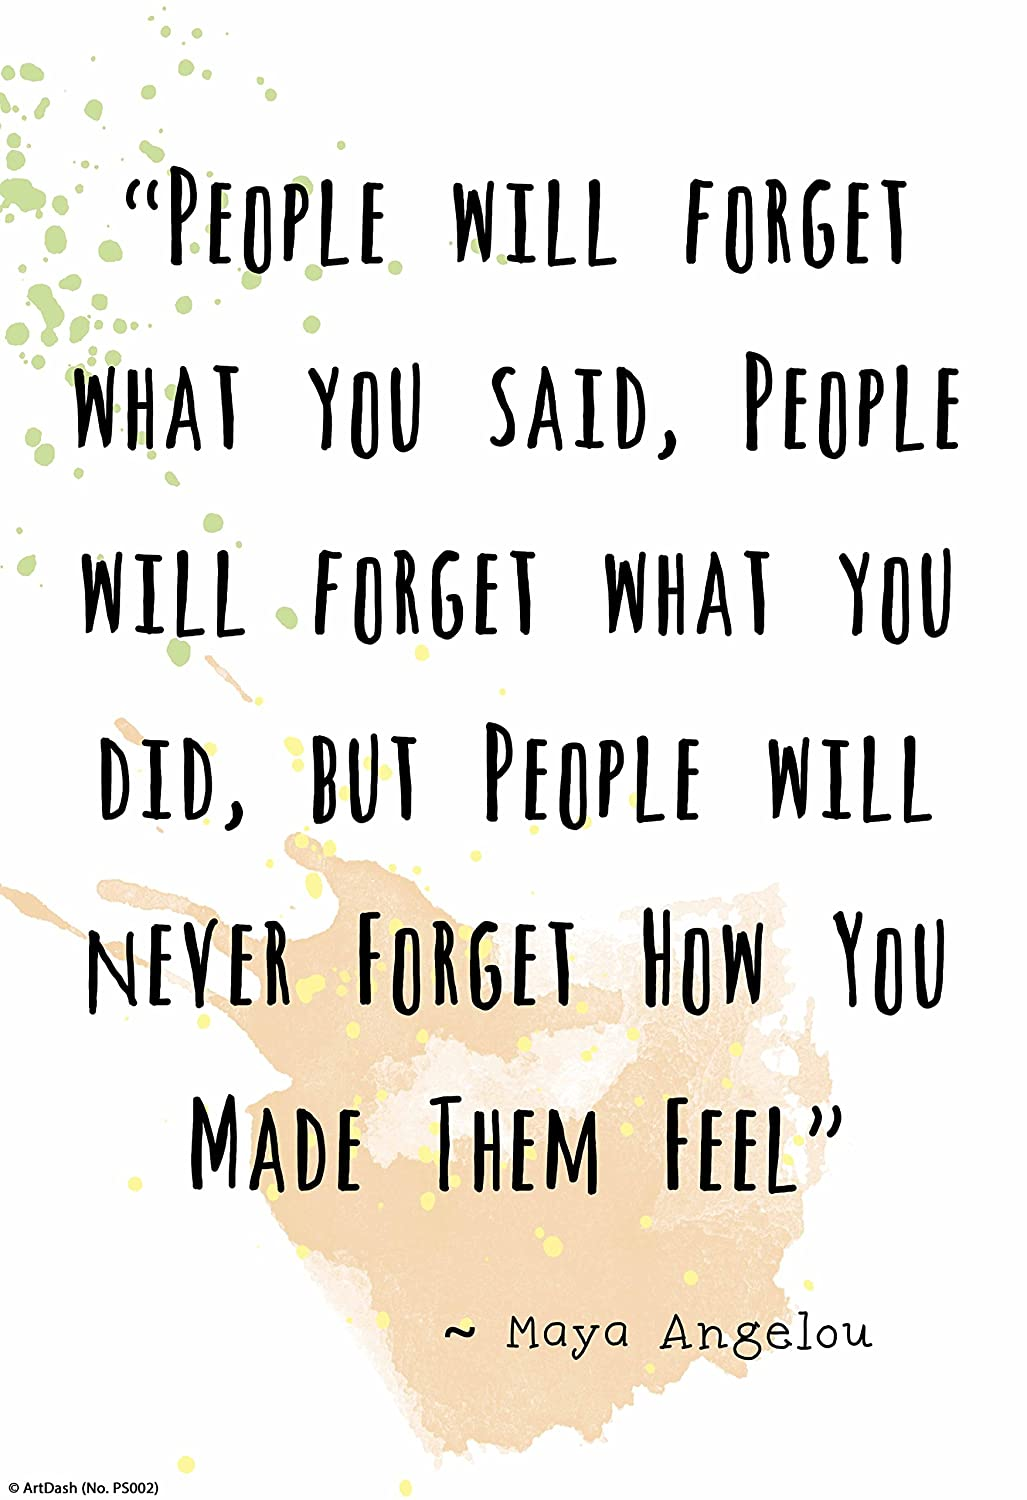 remember how you made them feel